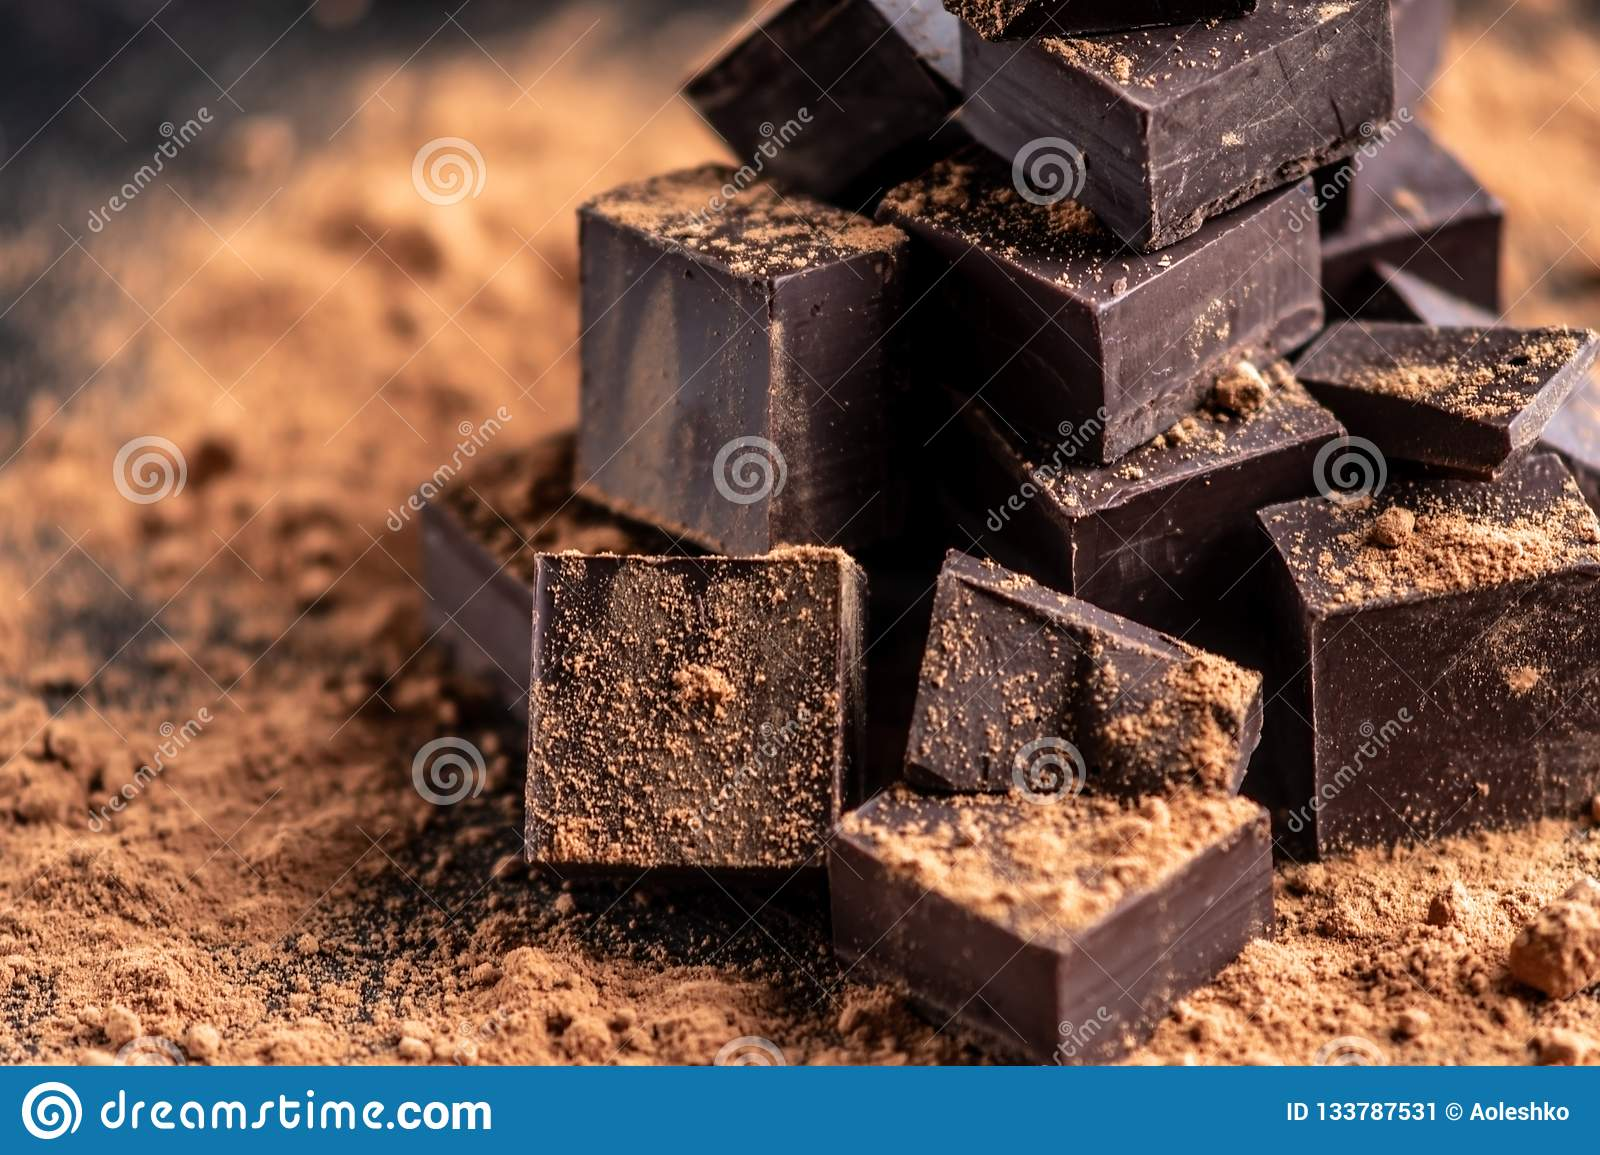 Pieces of dark bitter chocolate with cocoa powder on dark wooden background. Concept of confectionery ingredients